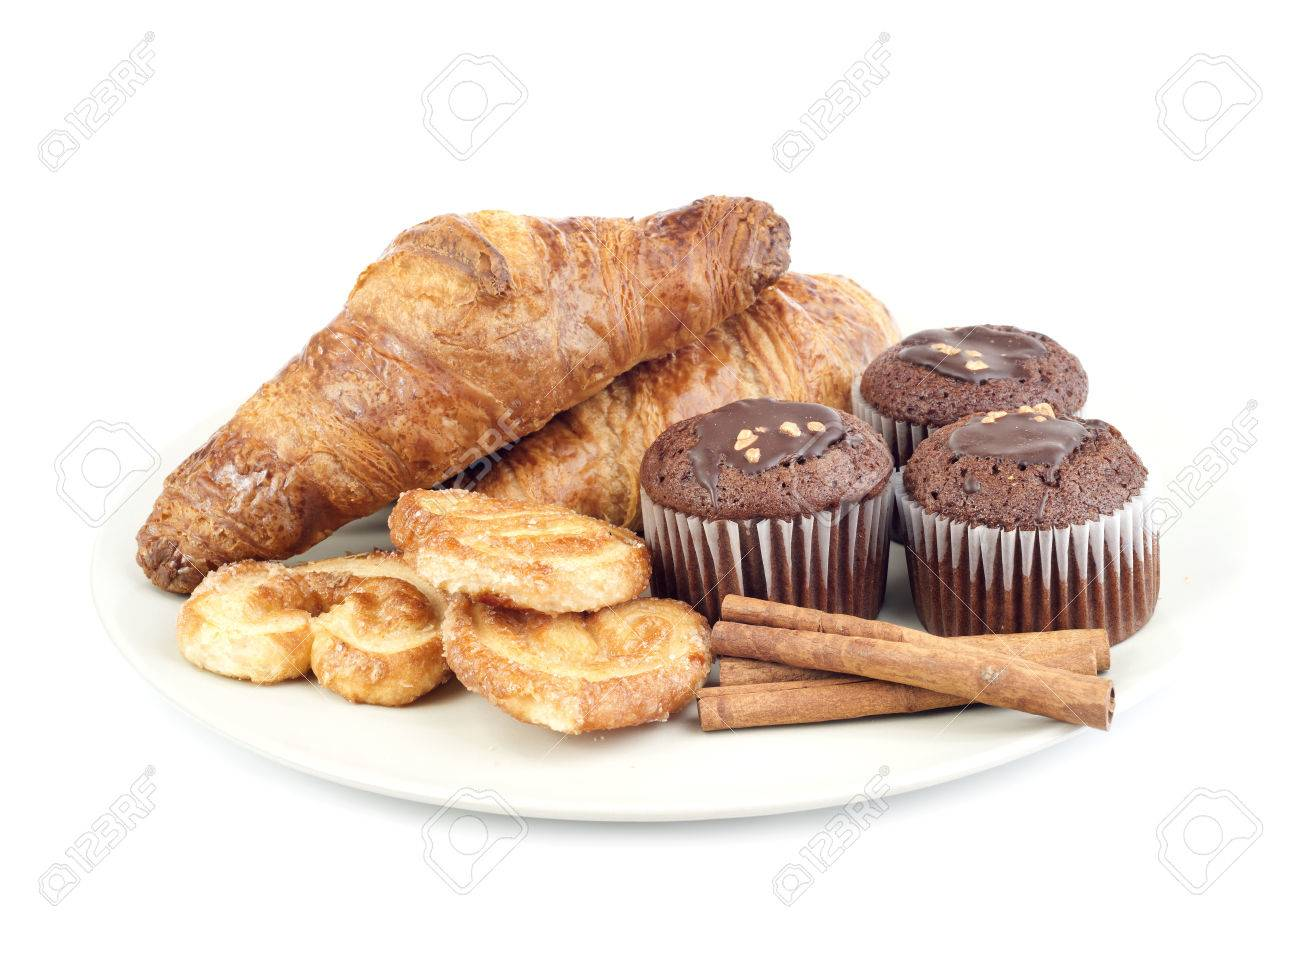 Hilo para dar los buenos días - Página 3 35820459-croissants-muffins-cookies-and-stiks-cinnamon-of-plate-isolated-on-white-background